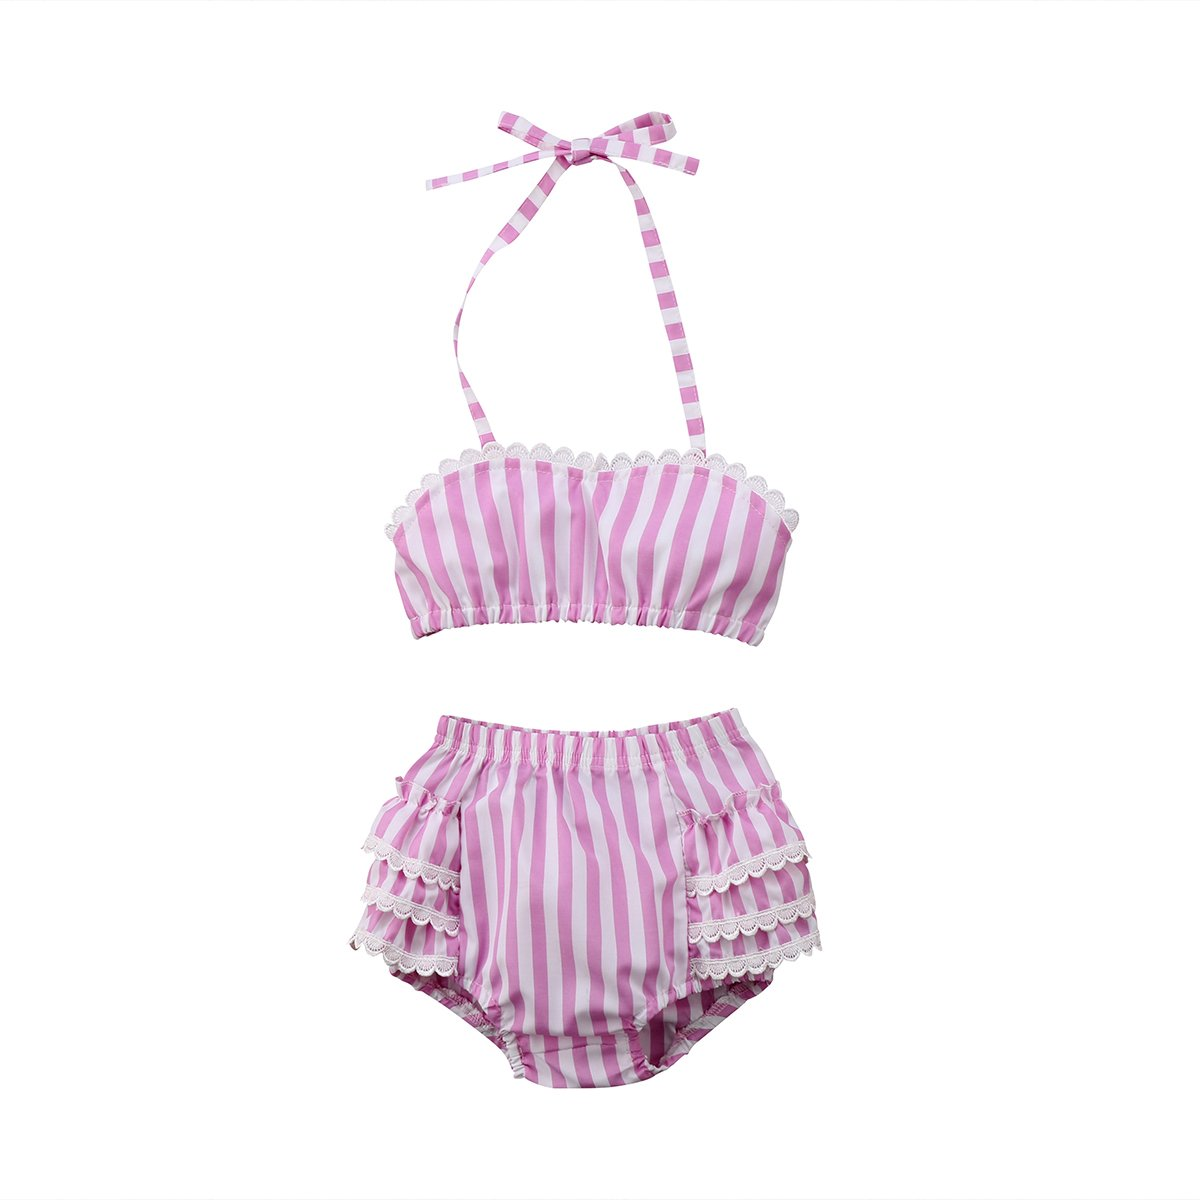 yannzi Toddler Baby Girl Bikini Swimsuit Lace Striped Halter Top Ruffle Shorts Sunsuit Clothes 2 Pcs